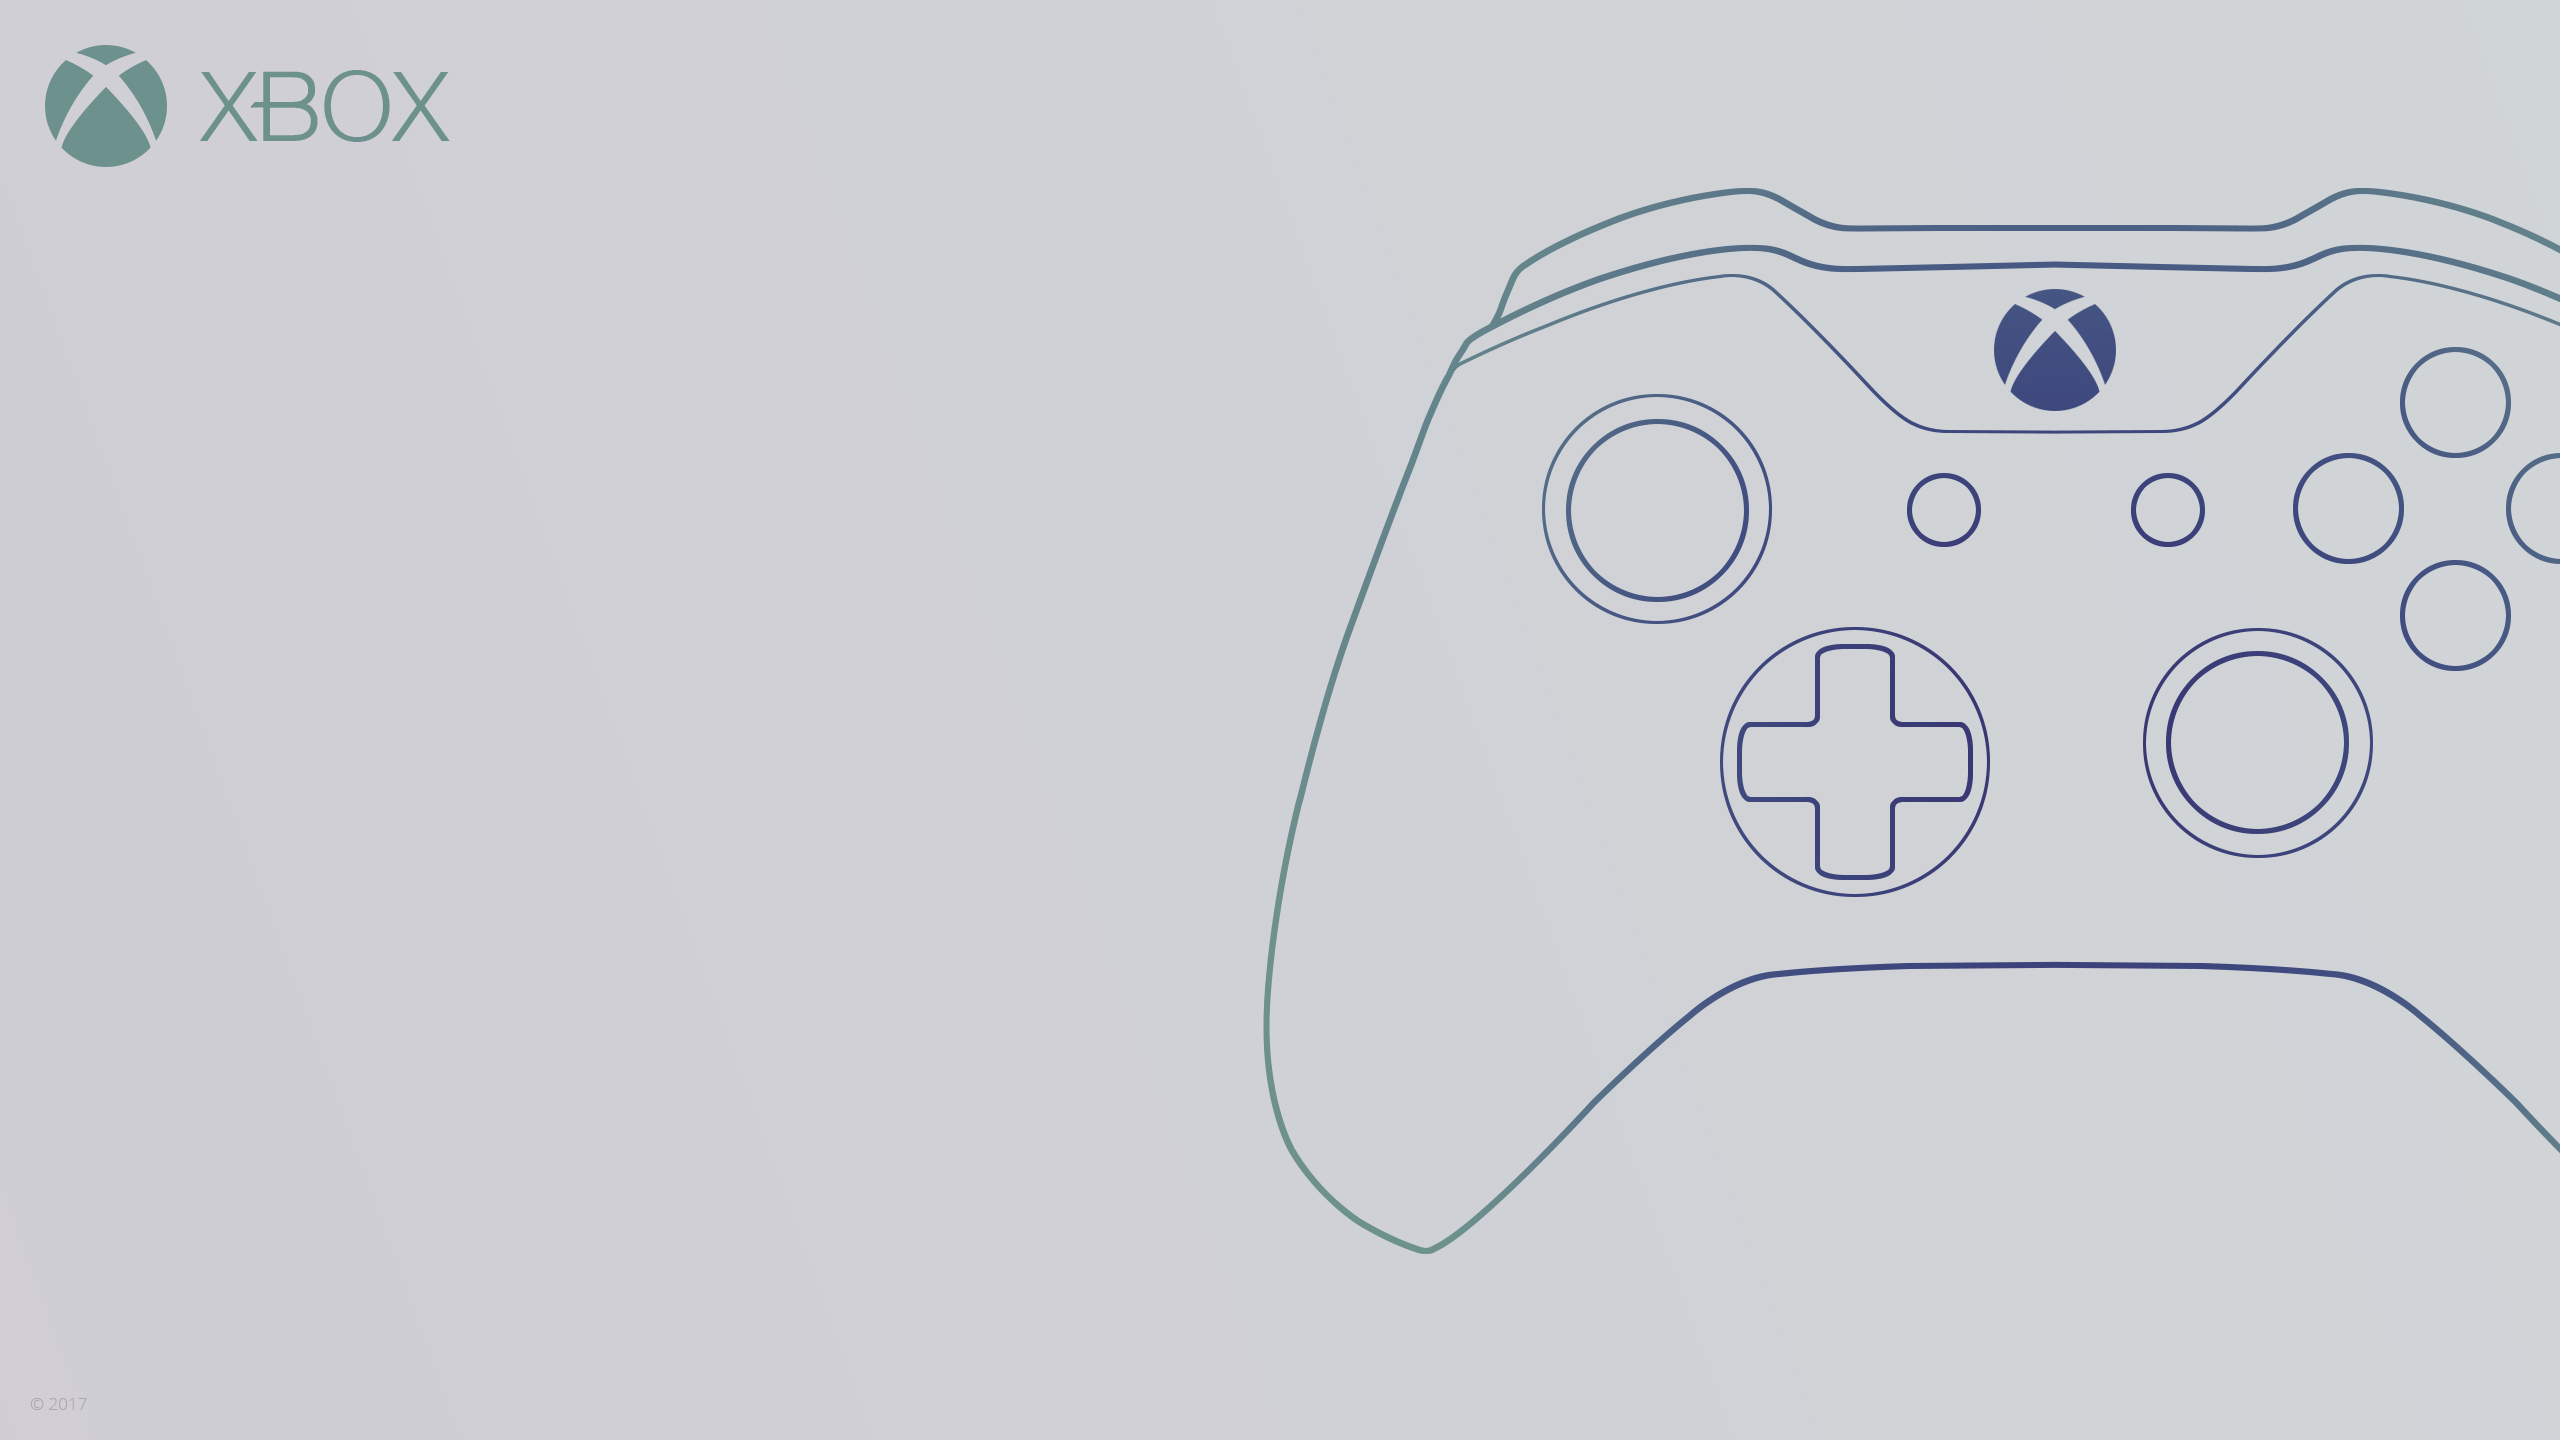 D Line Drawings Xbox One : Xbox controller wallpaper by ljdesigner on deviantart